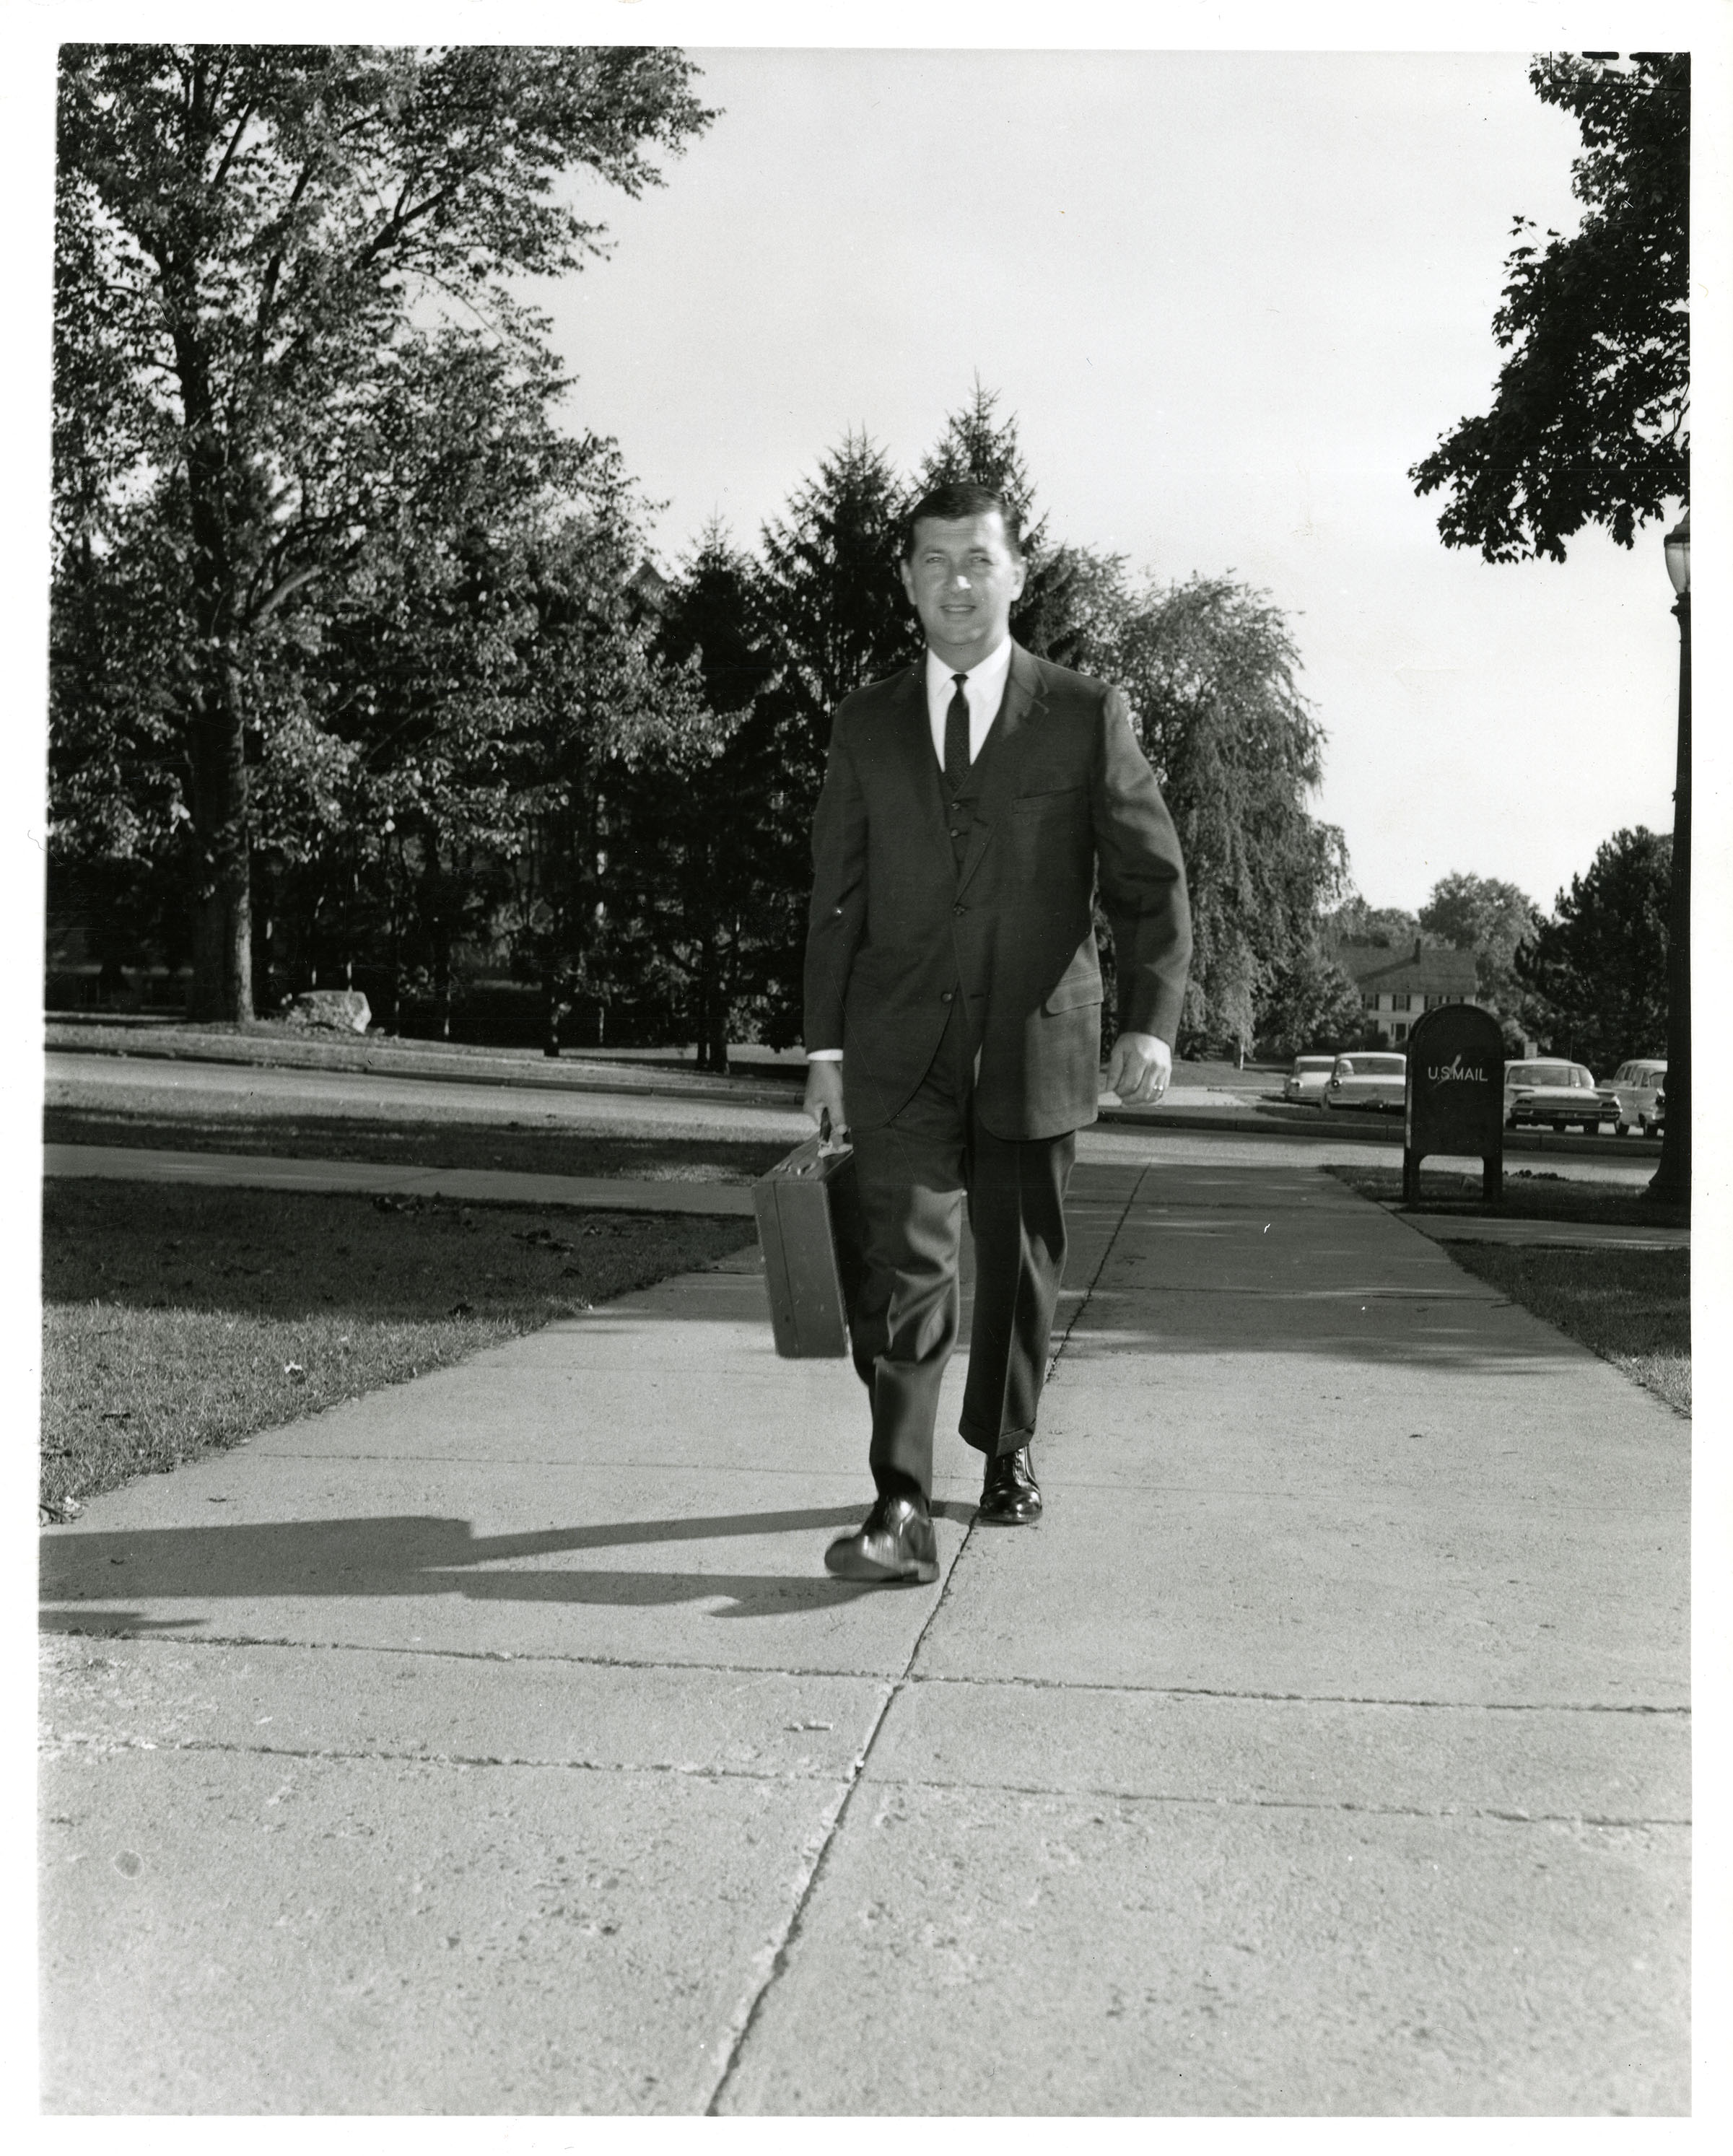 UConn President Homer D. Babbidge Jr. on his first day as President, Fall 1962